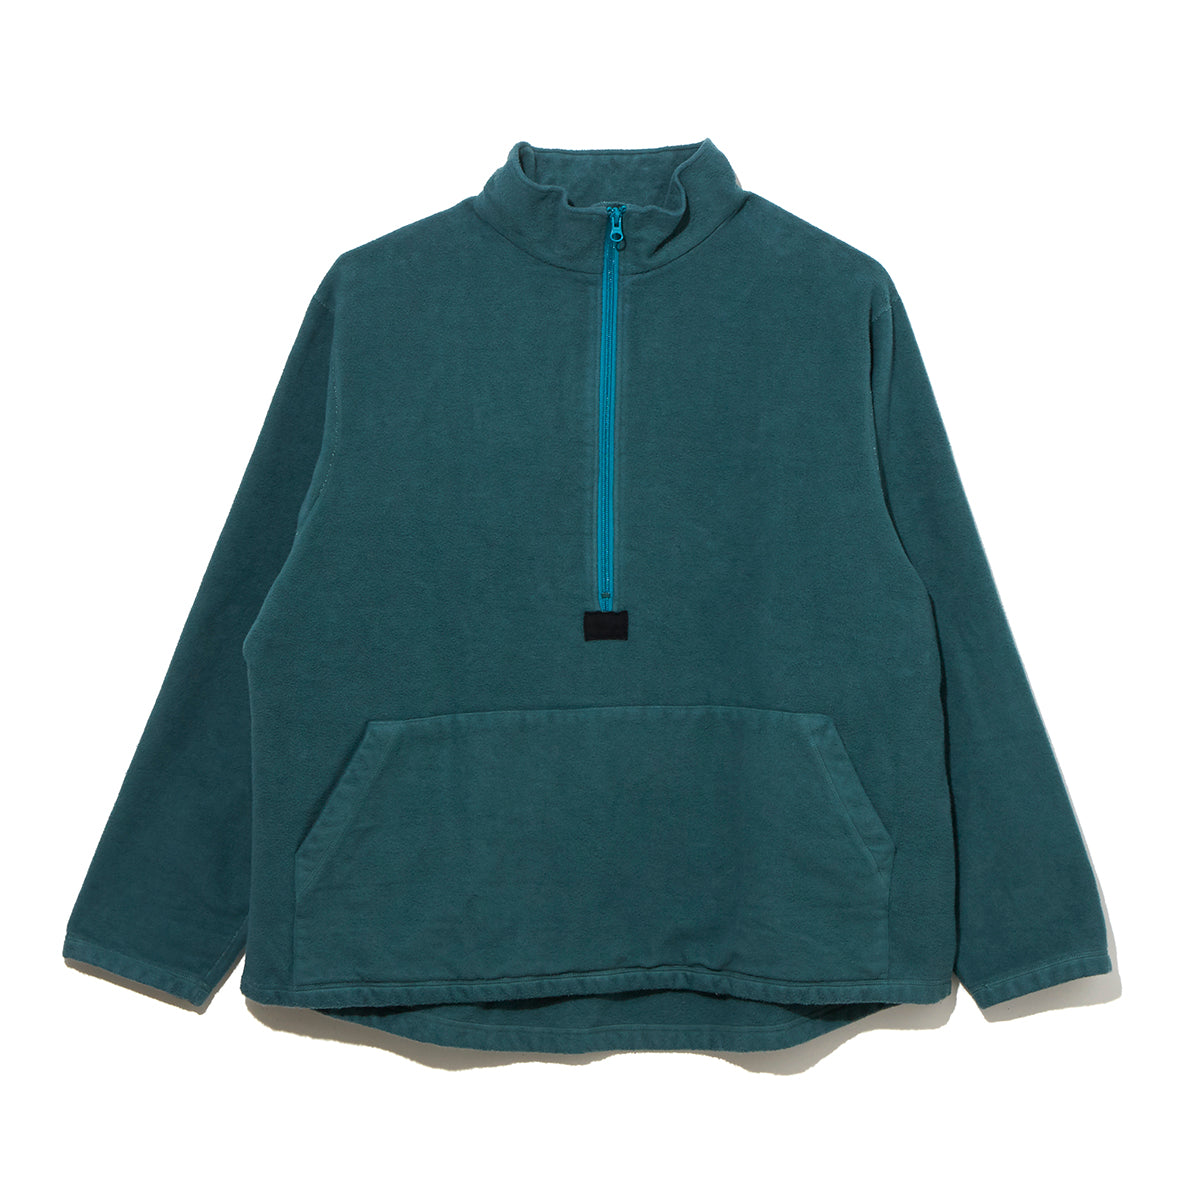 FLEECE JACKET / GREEN (21A-NSA-JK-09)